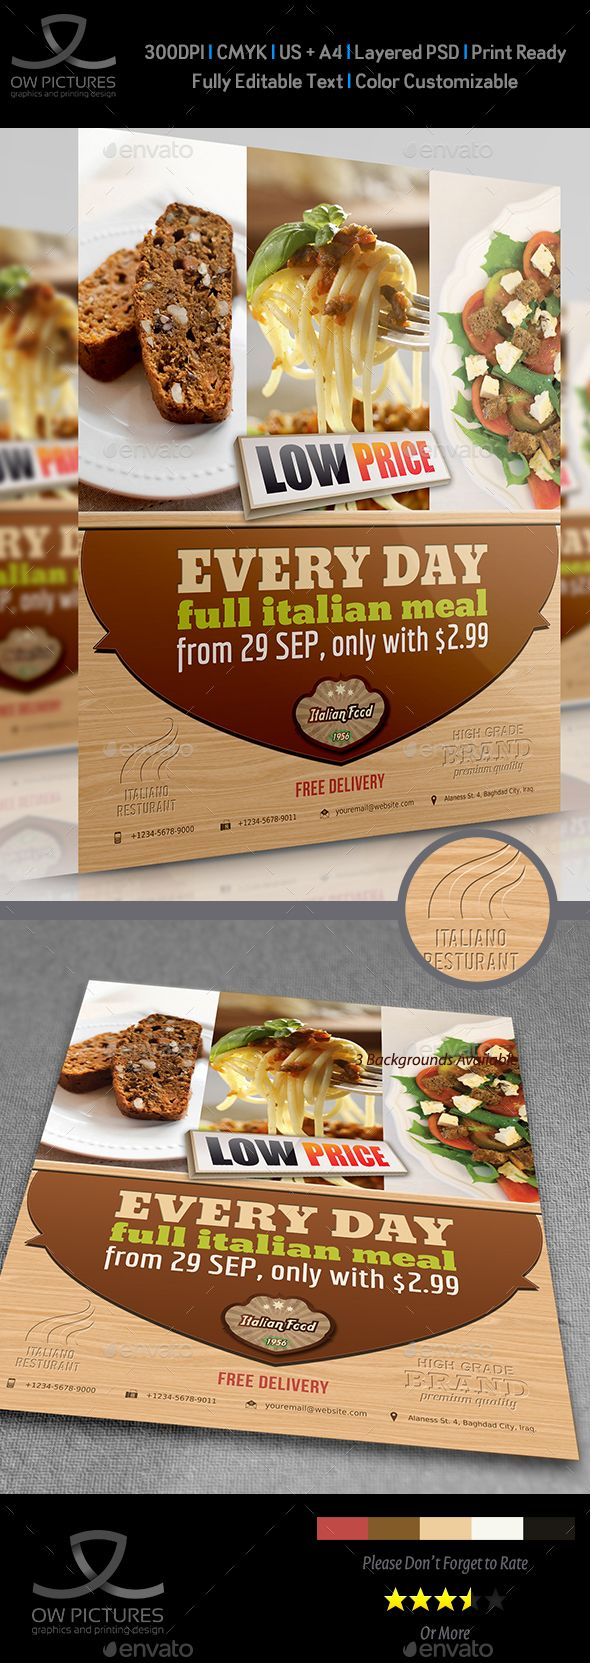 Italian Restaurant Flyer  Print Templates Flyer Printing And